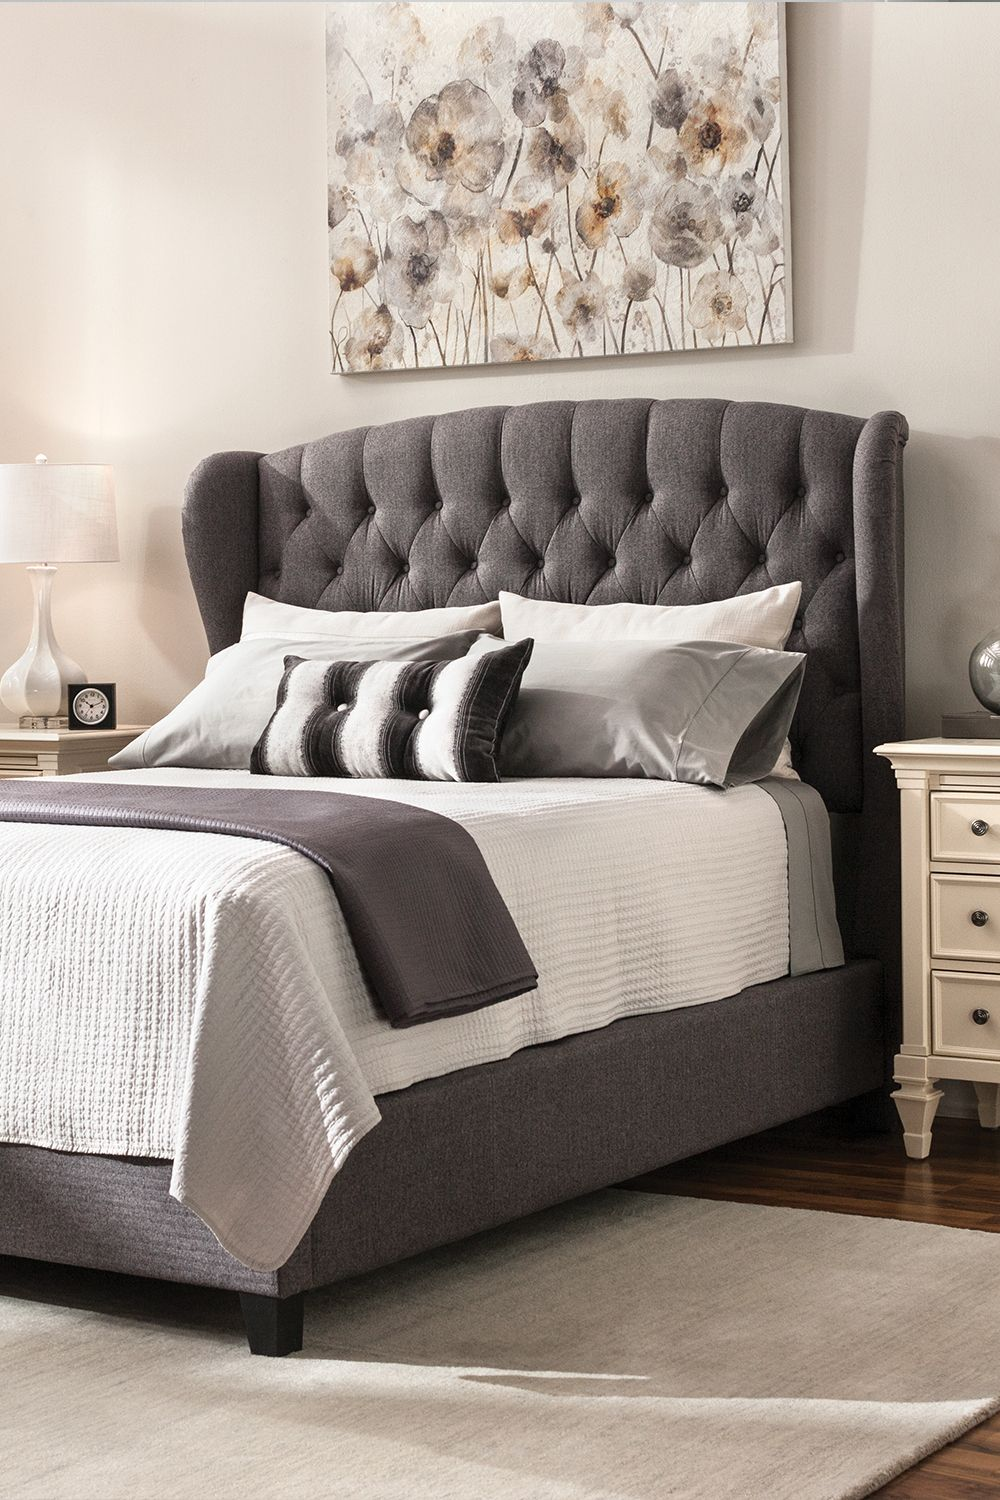 Add Style To Your Bedroom With This Begley Queen Bed The Frame Is